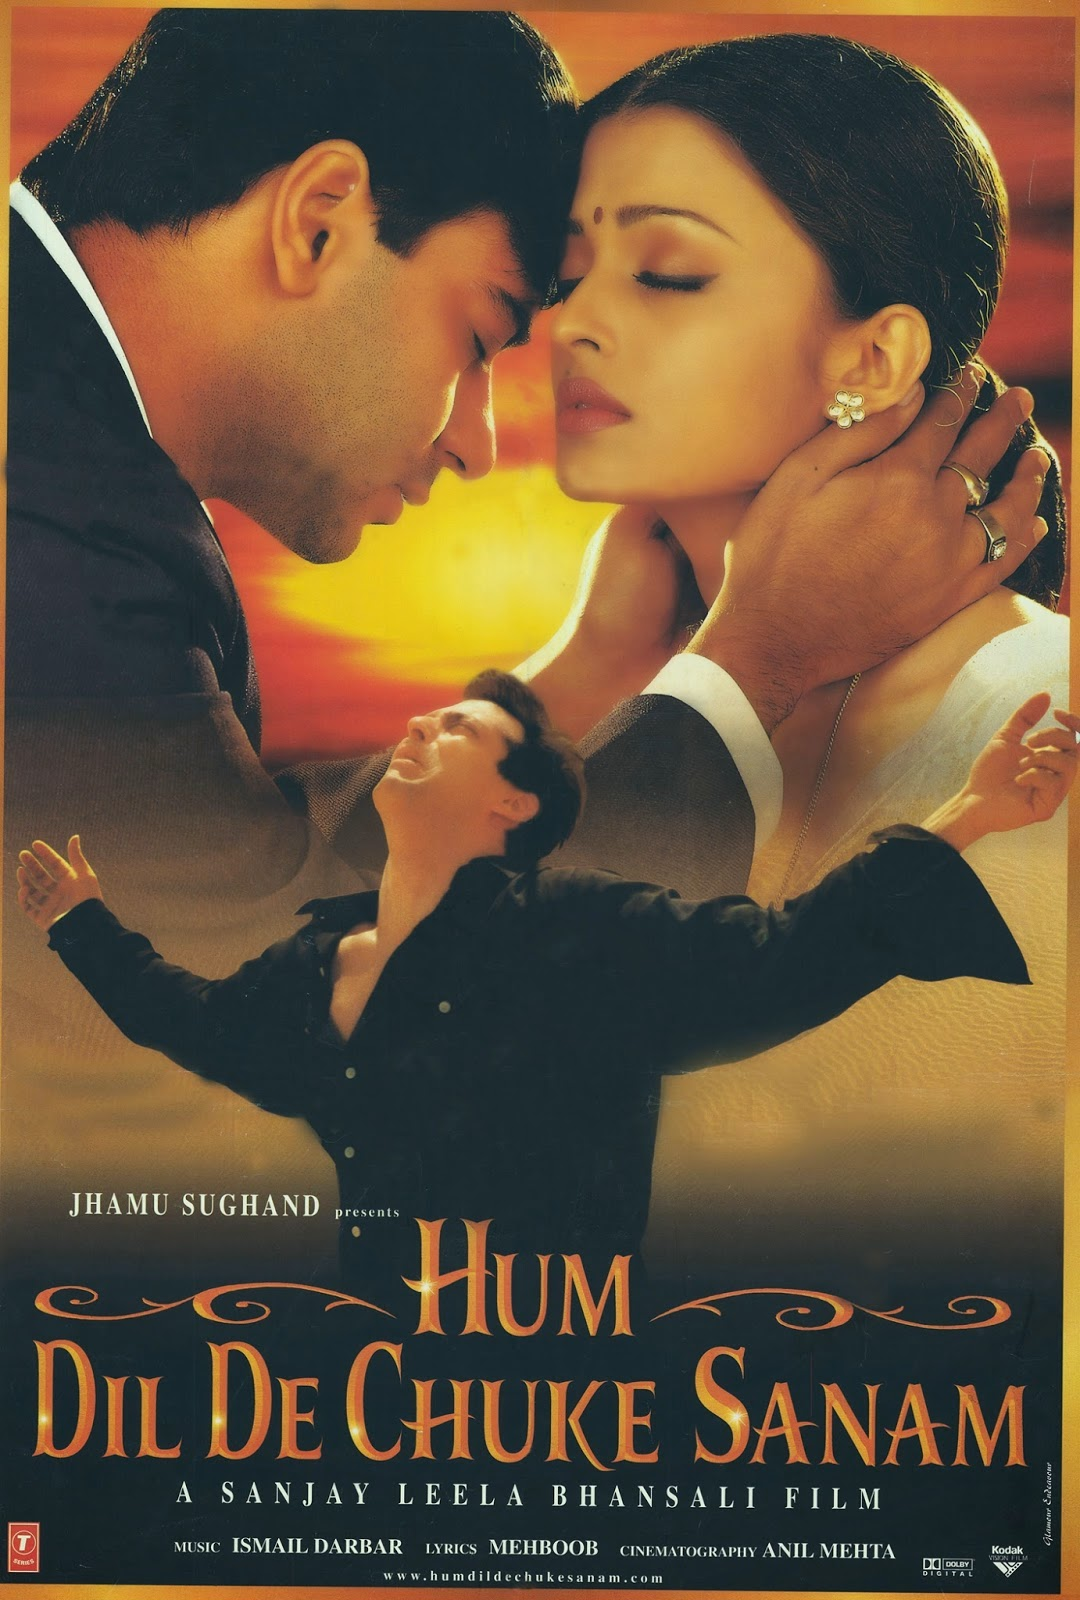 Sacrifice is the greatest form of love - 'Hum Dil De Chuke Sanam'